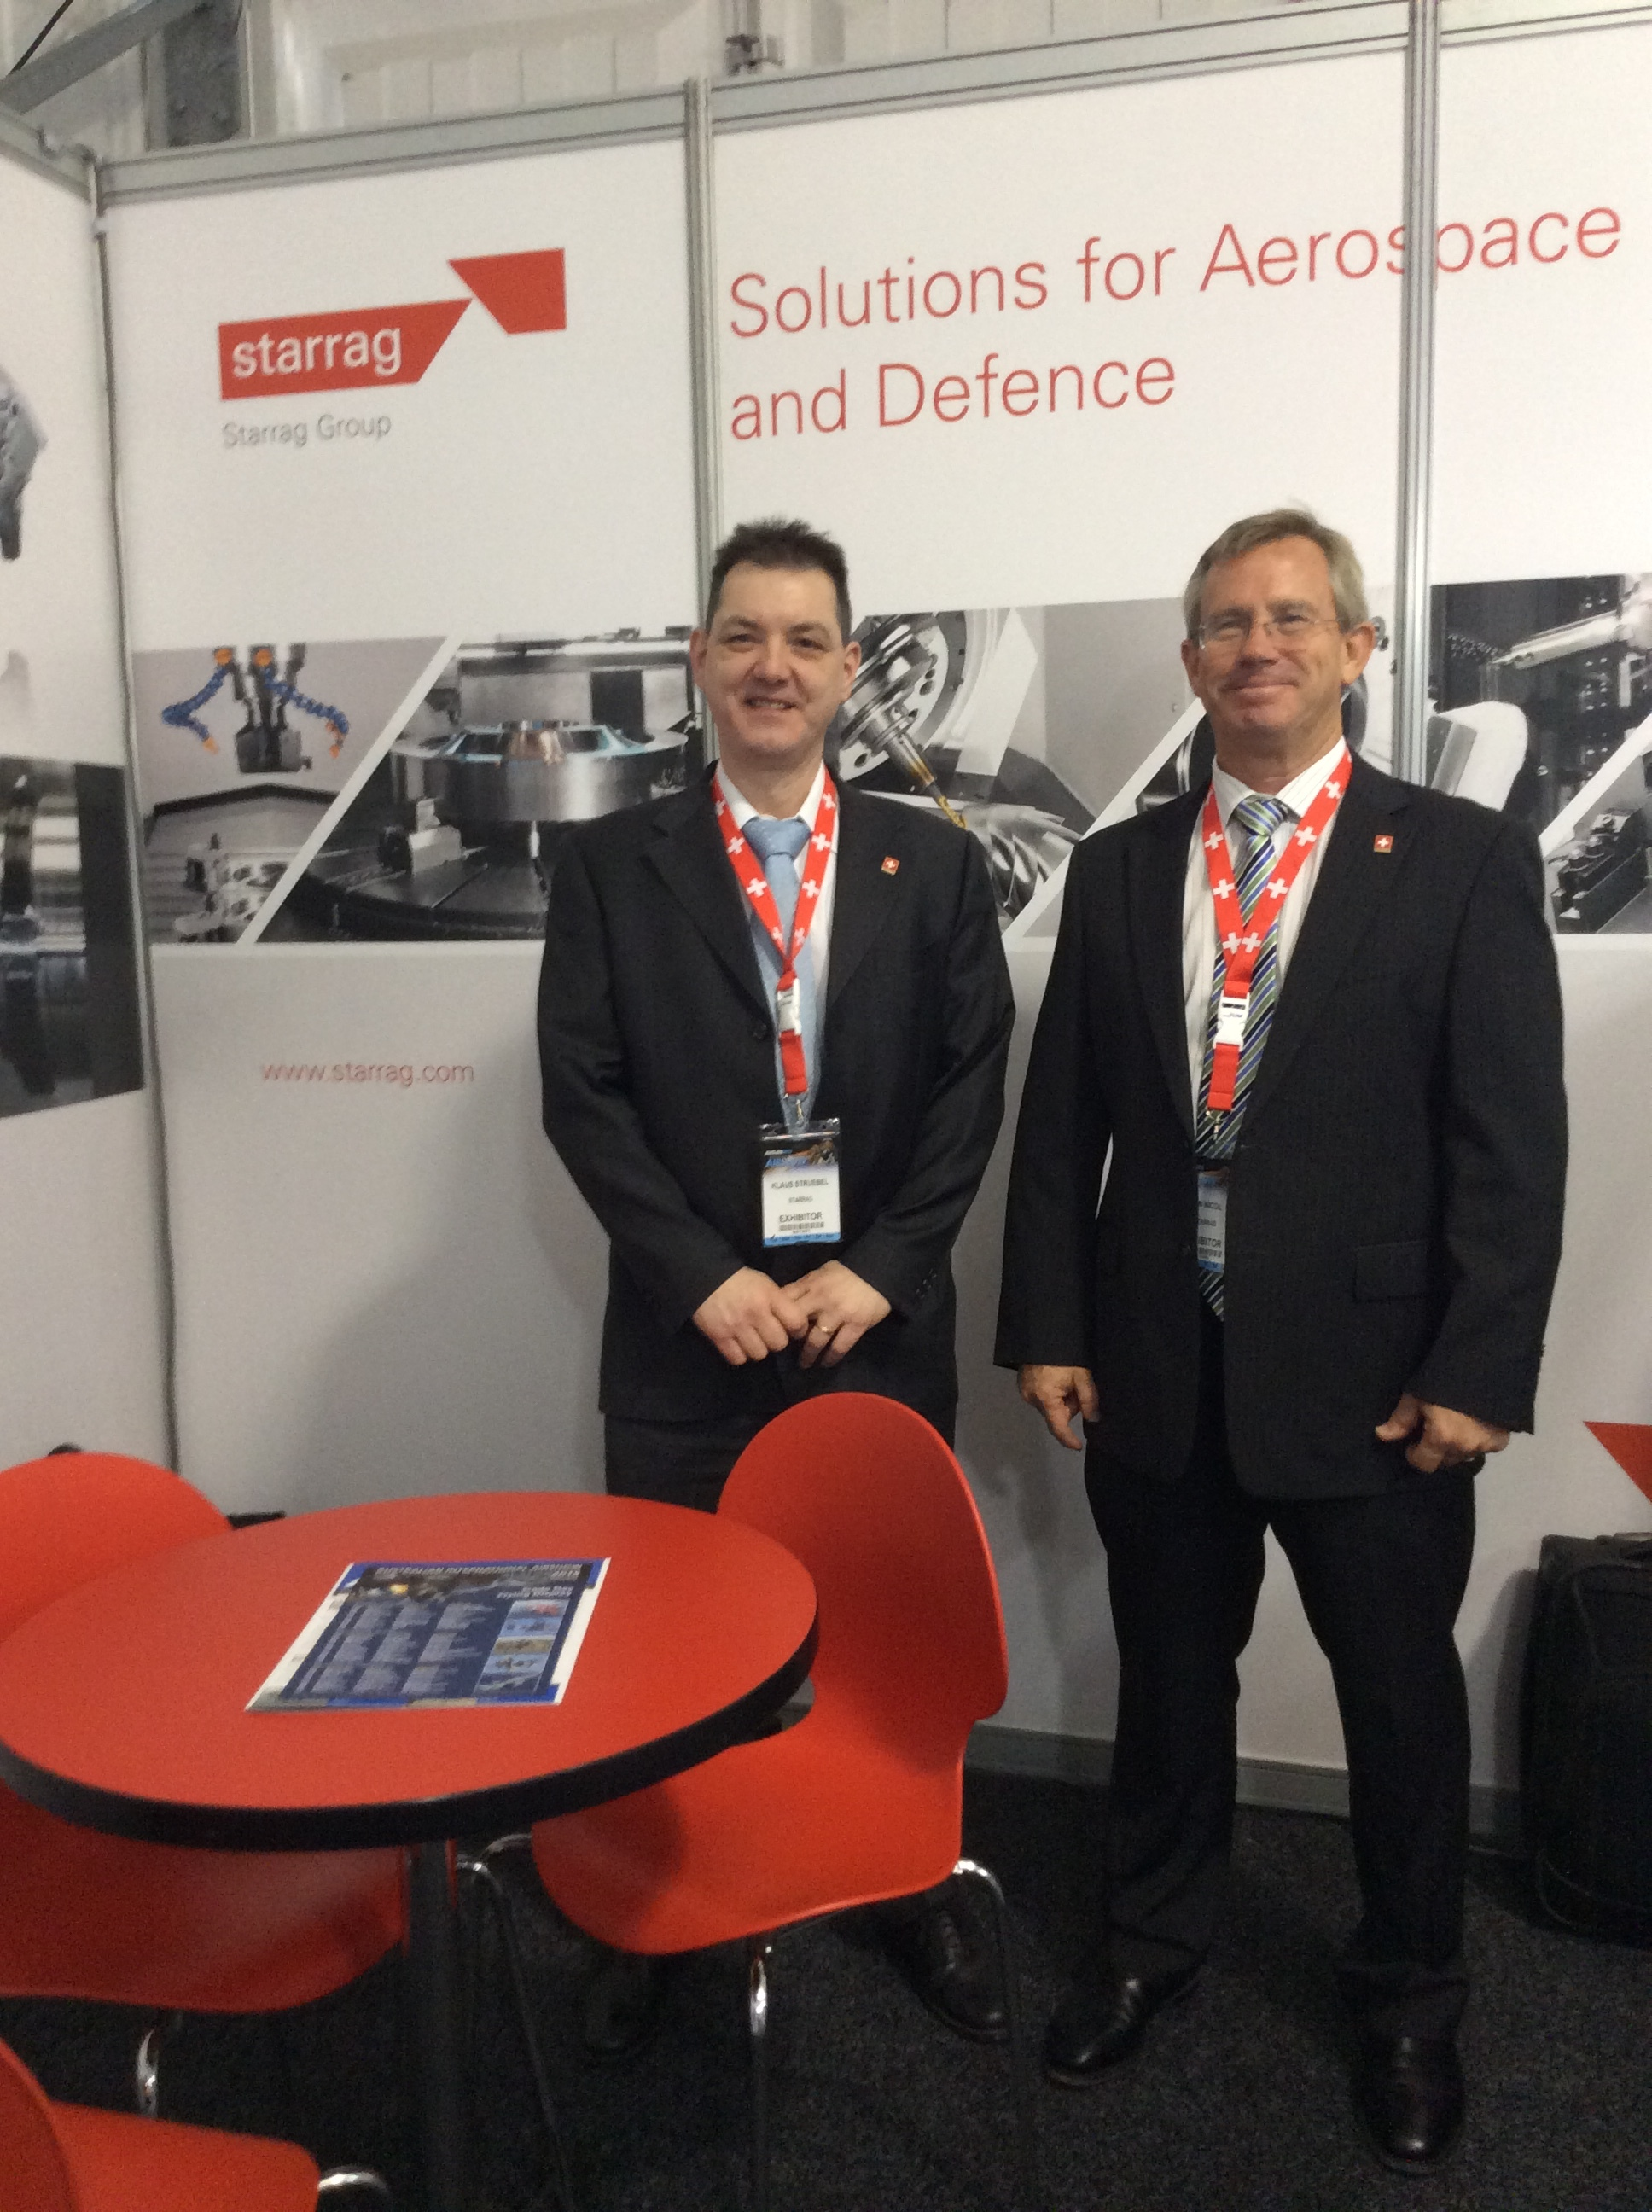 Klaus Struebel (Starrag Group) with Ian Nicol (Machine Tool Solutions) at the Avalon Air Show, 2015